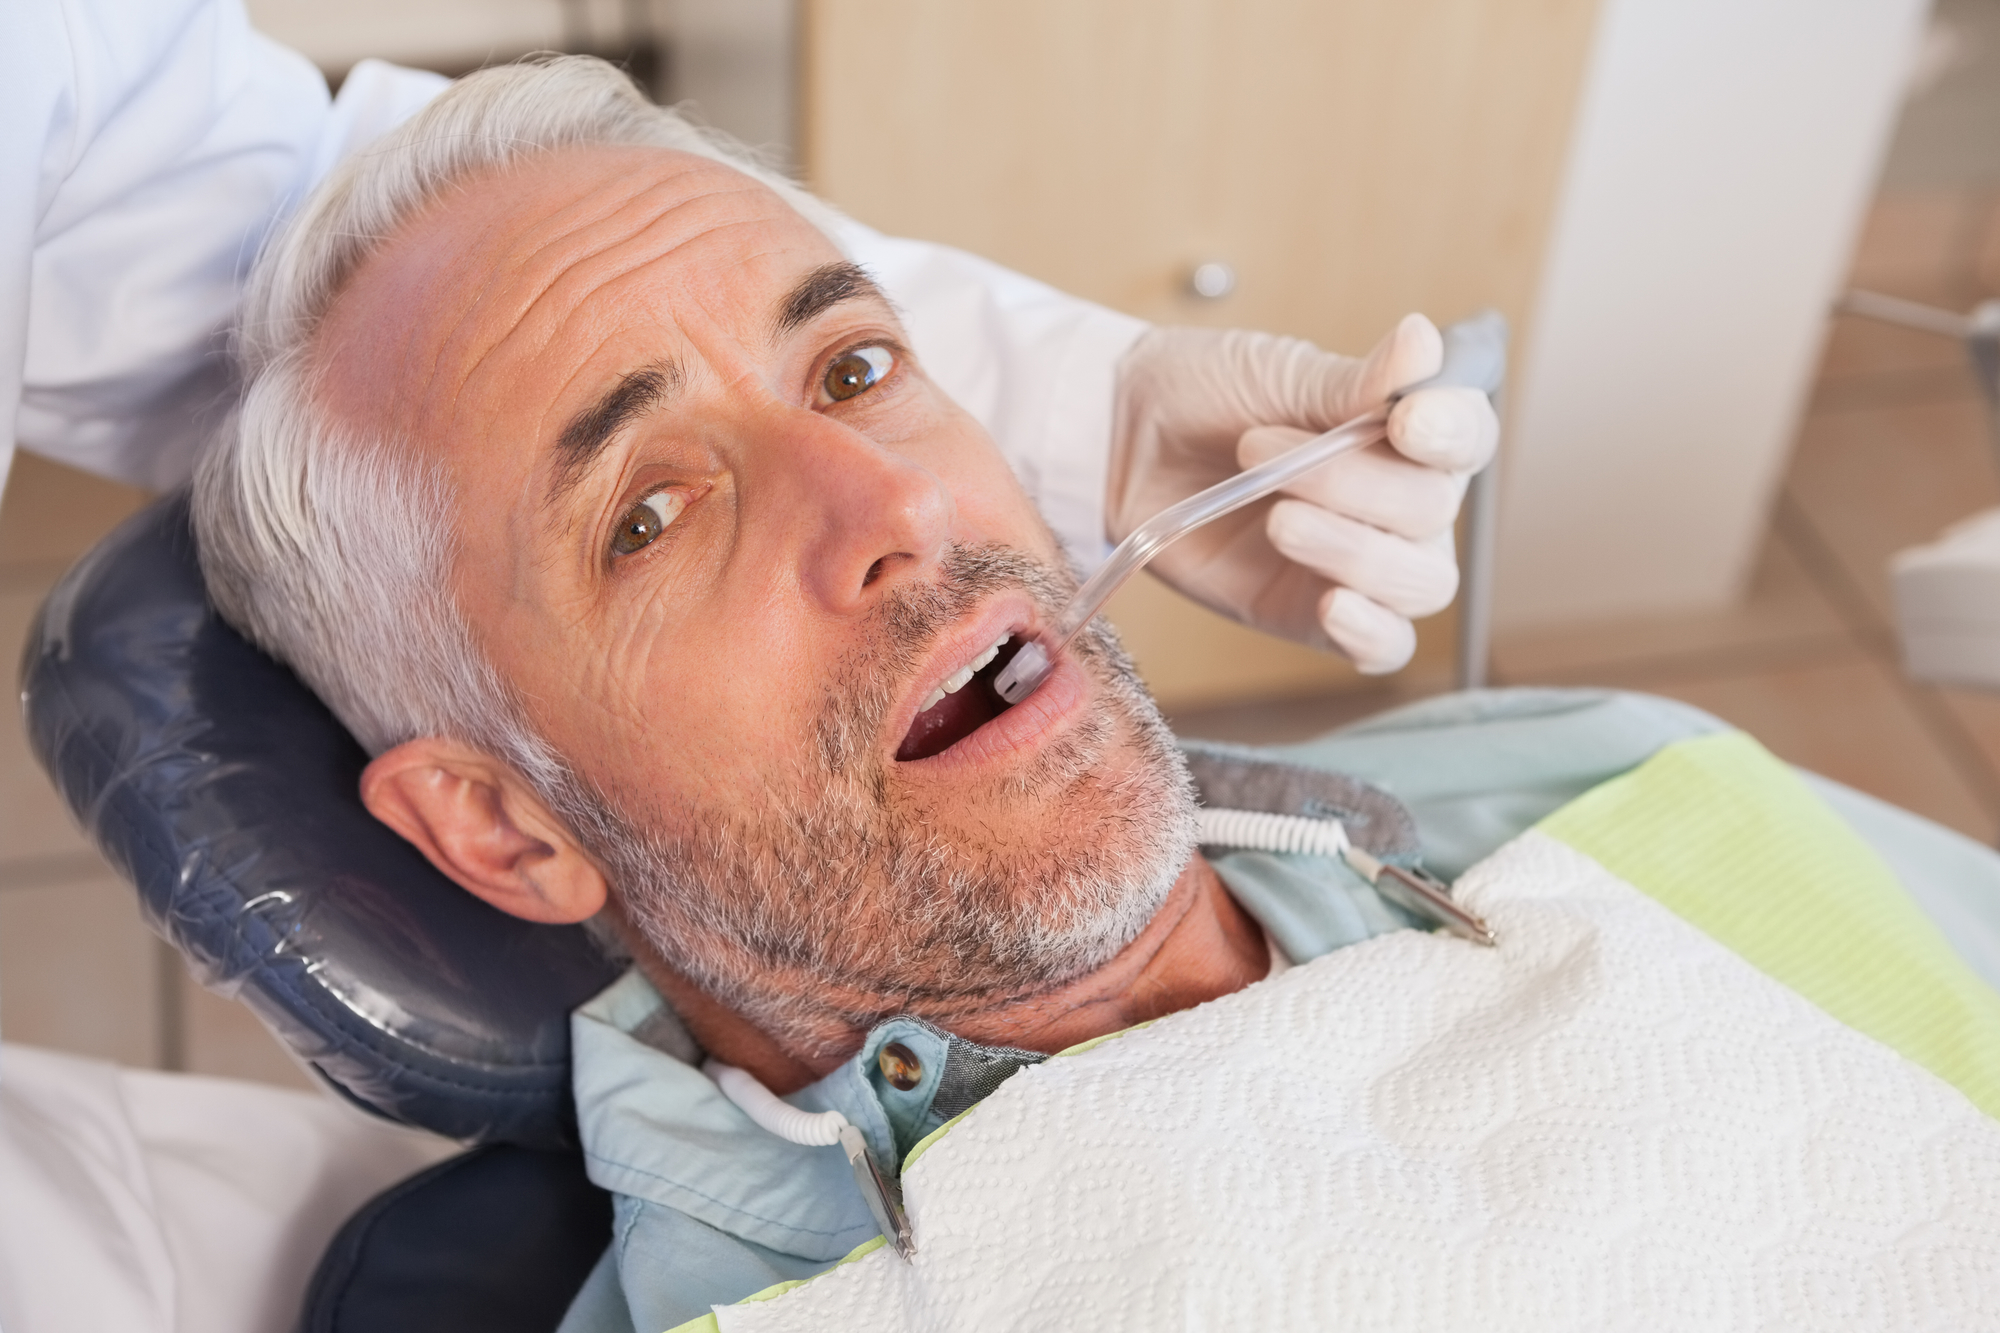 Who is the best emergency dentist west palm beach?